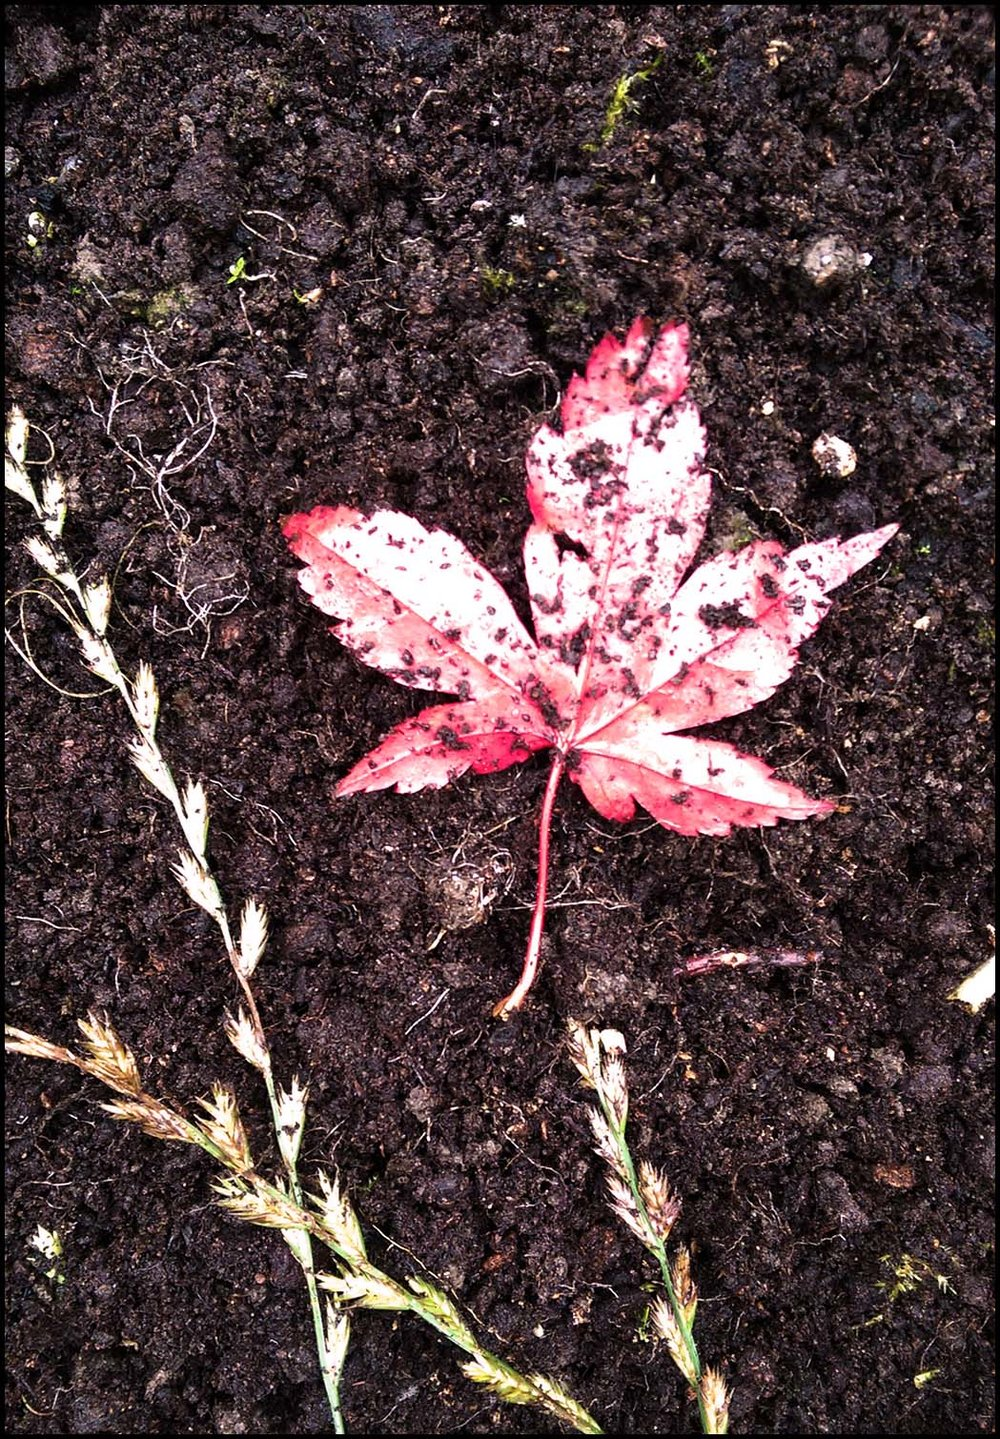 Red-Leaf-in-the-dirt.jpg